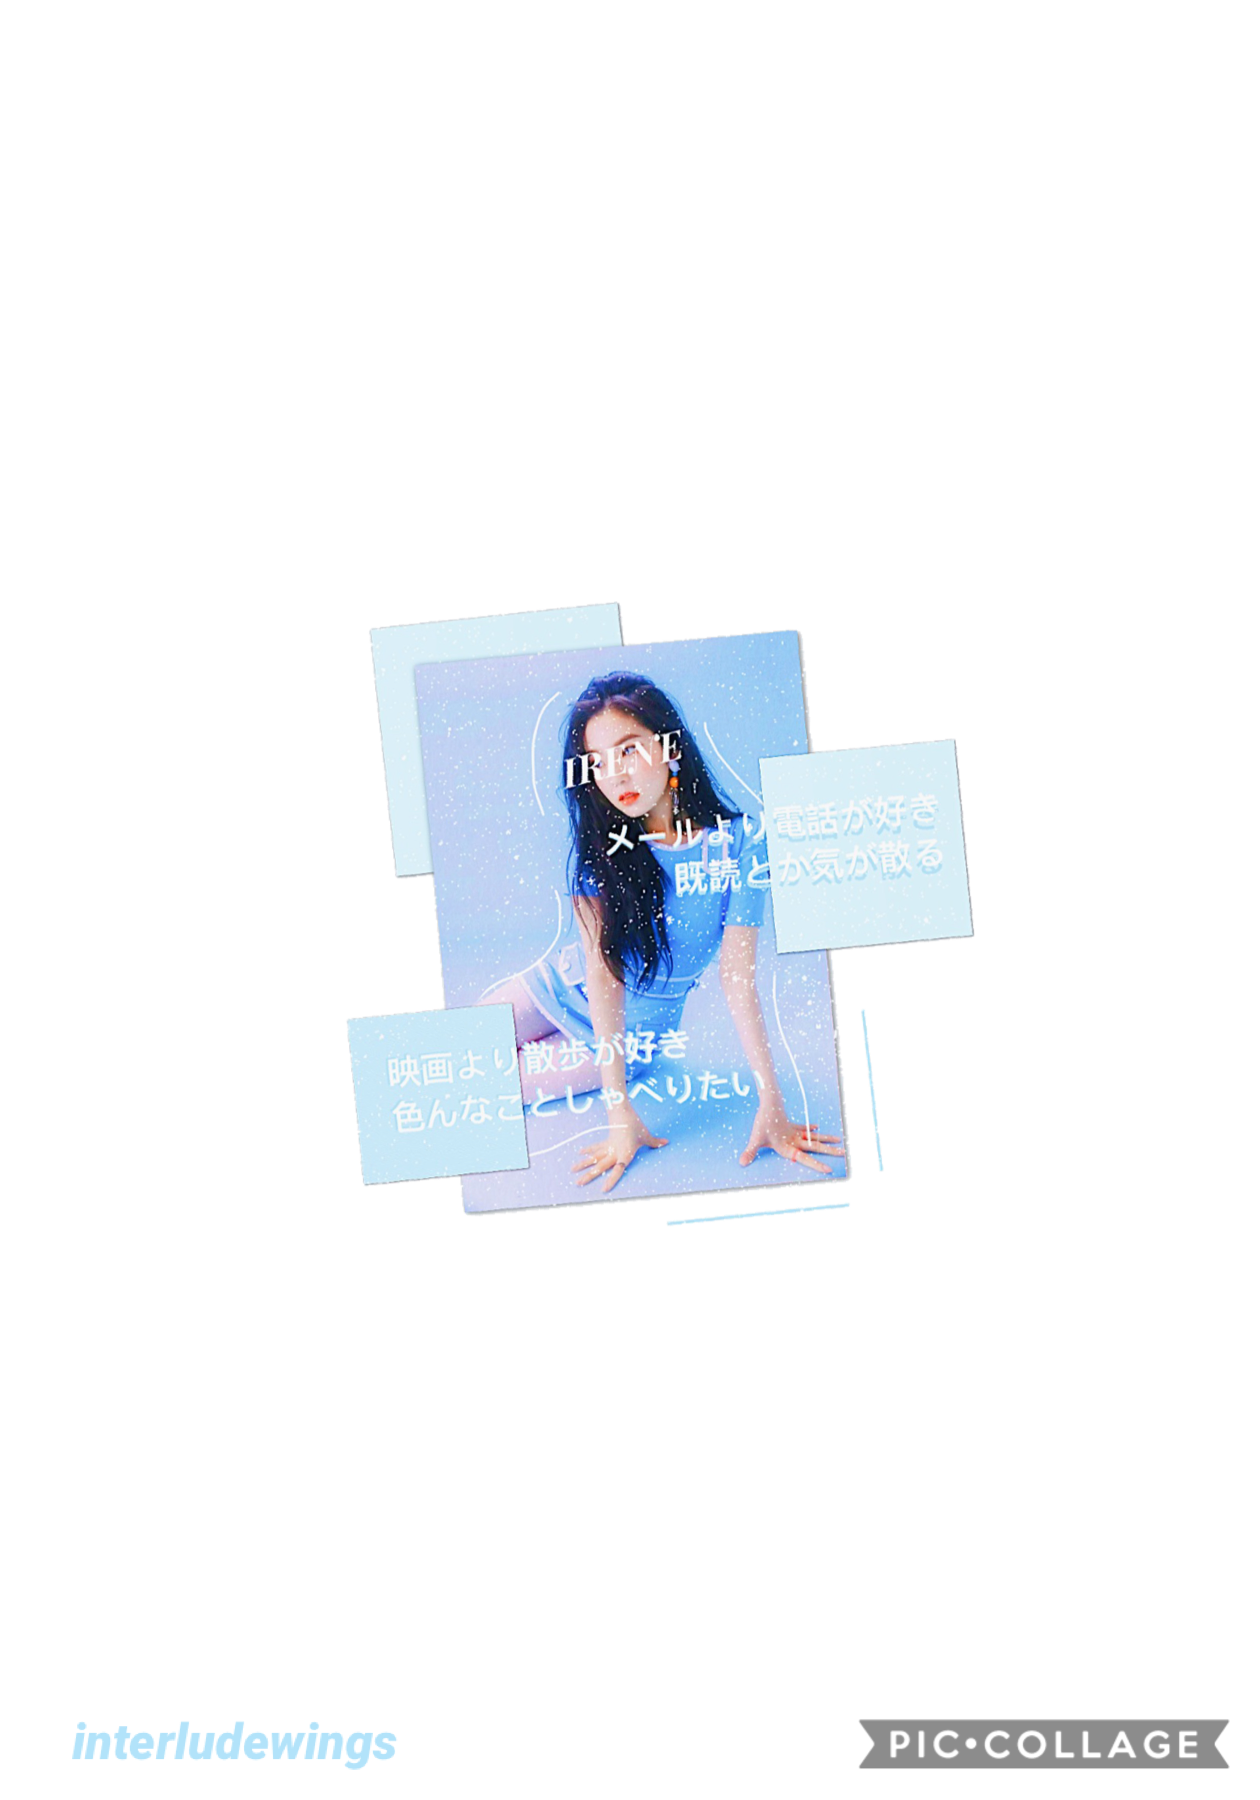 ❄️ open ❄️  irene~red velvet  sorry for being inactive!! idek what this edit is 😰